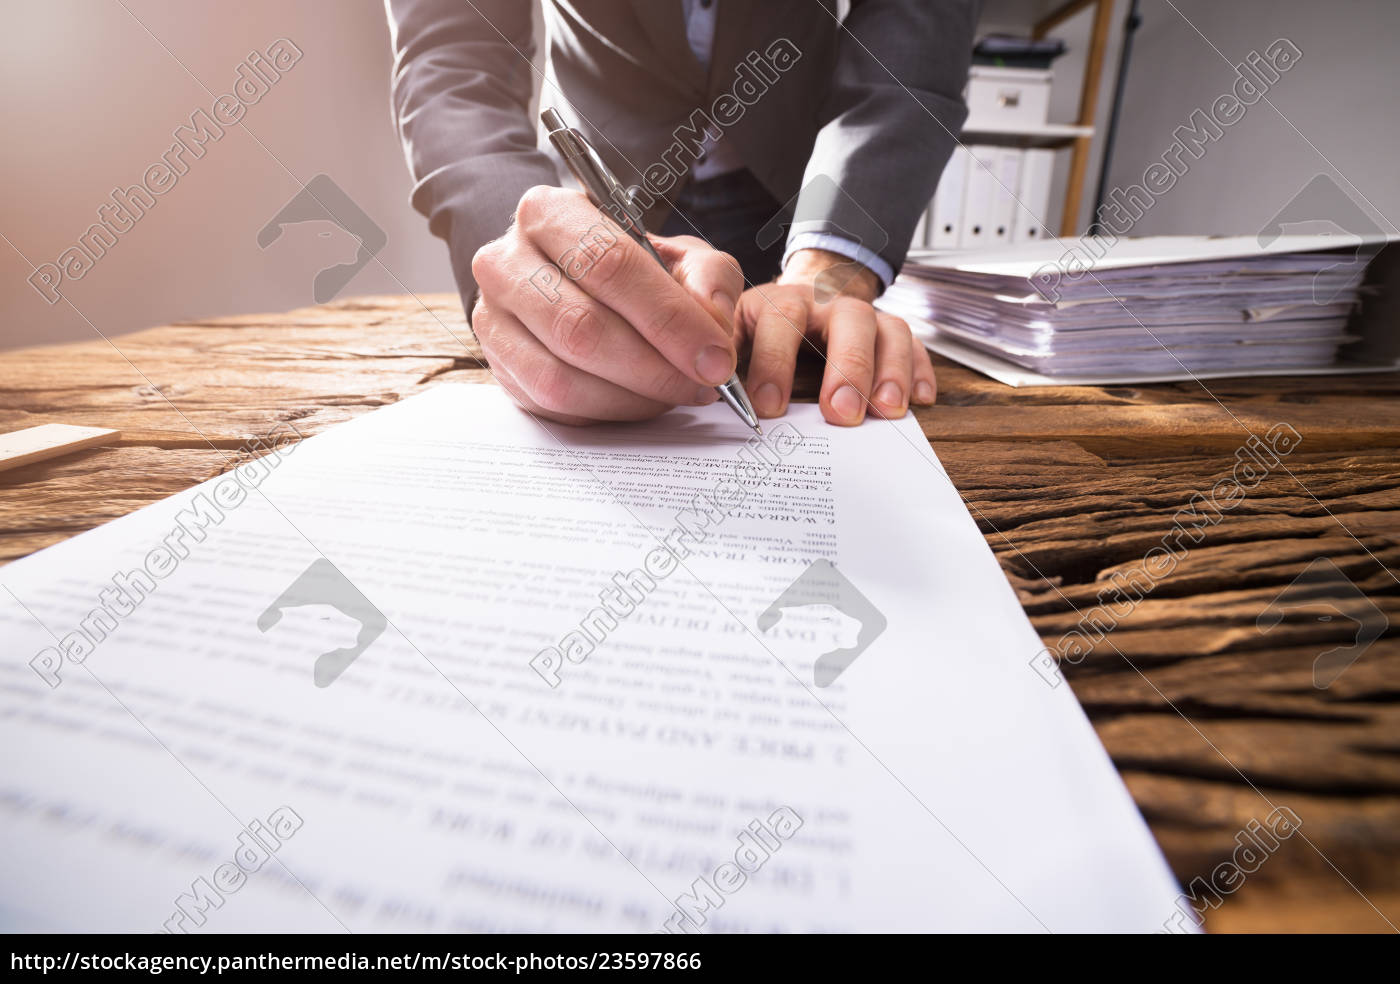 businessperson, signing, document - 23597866